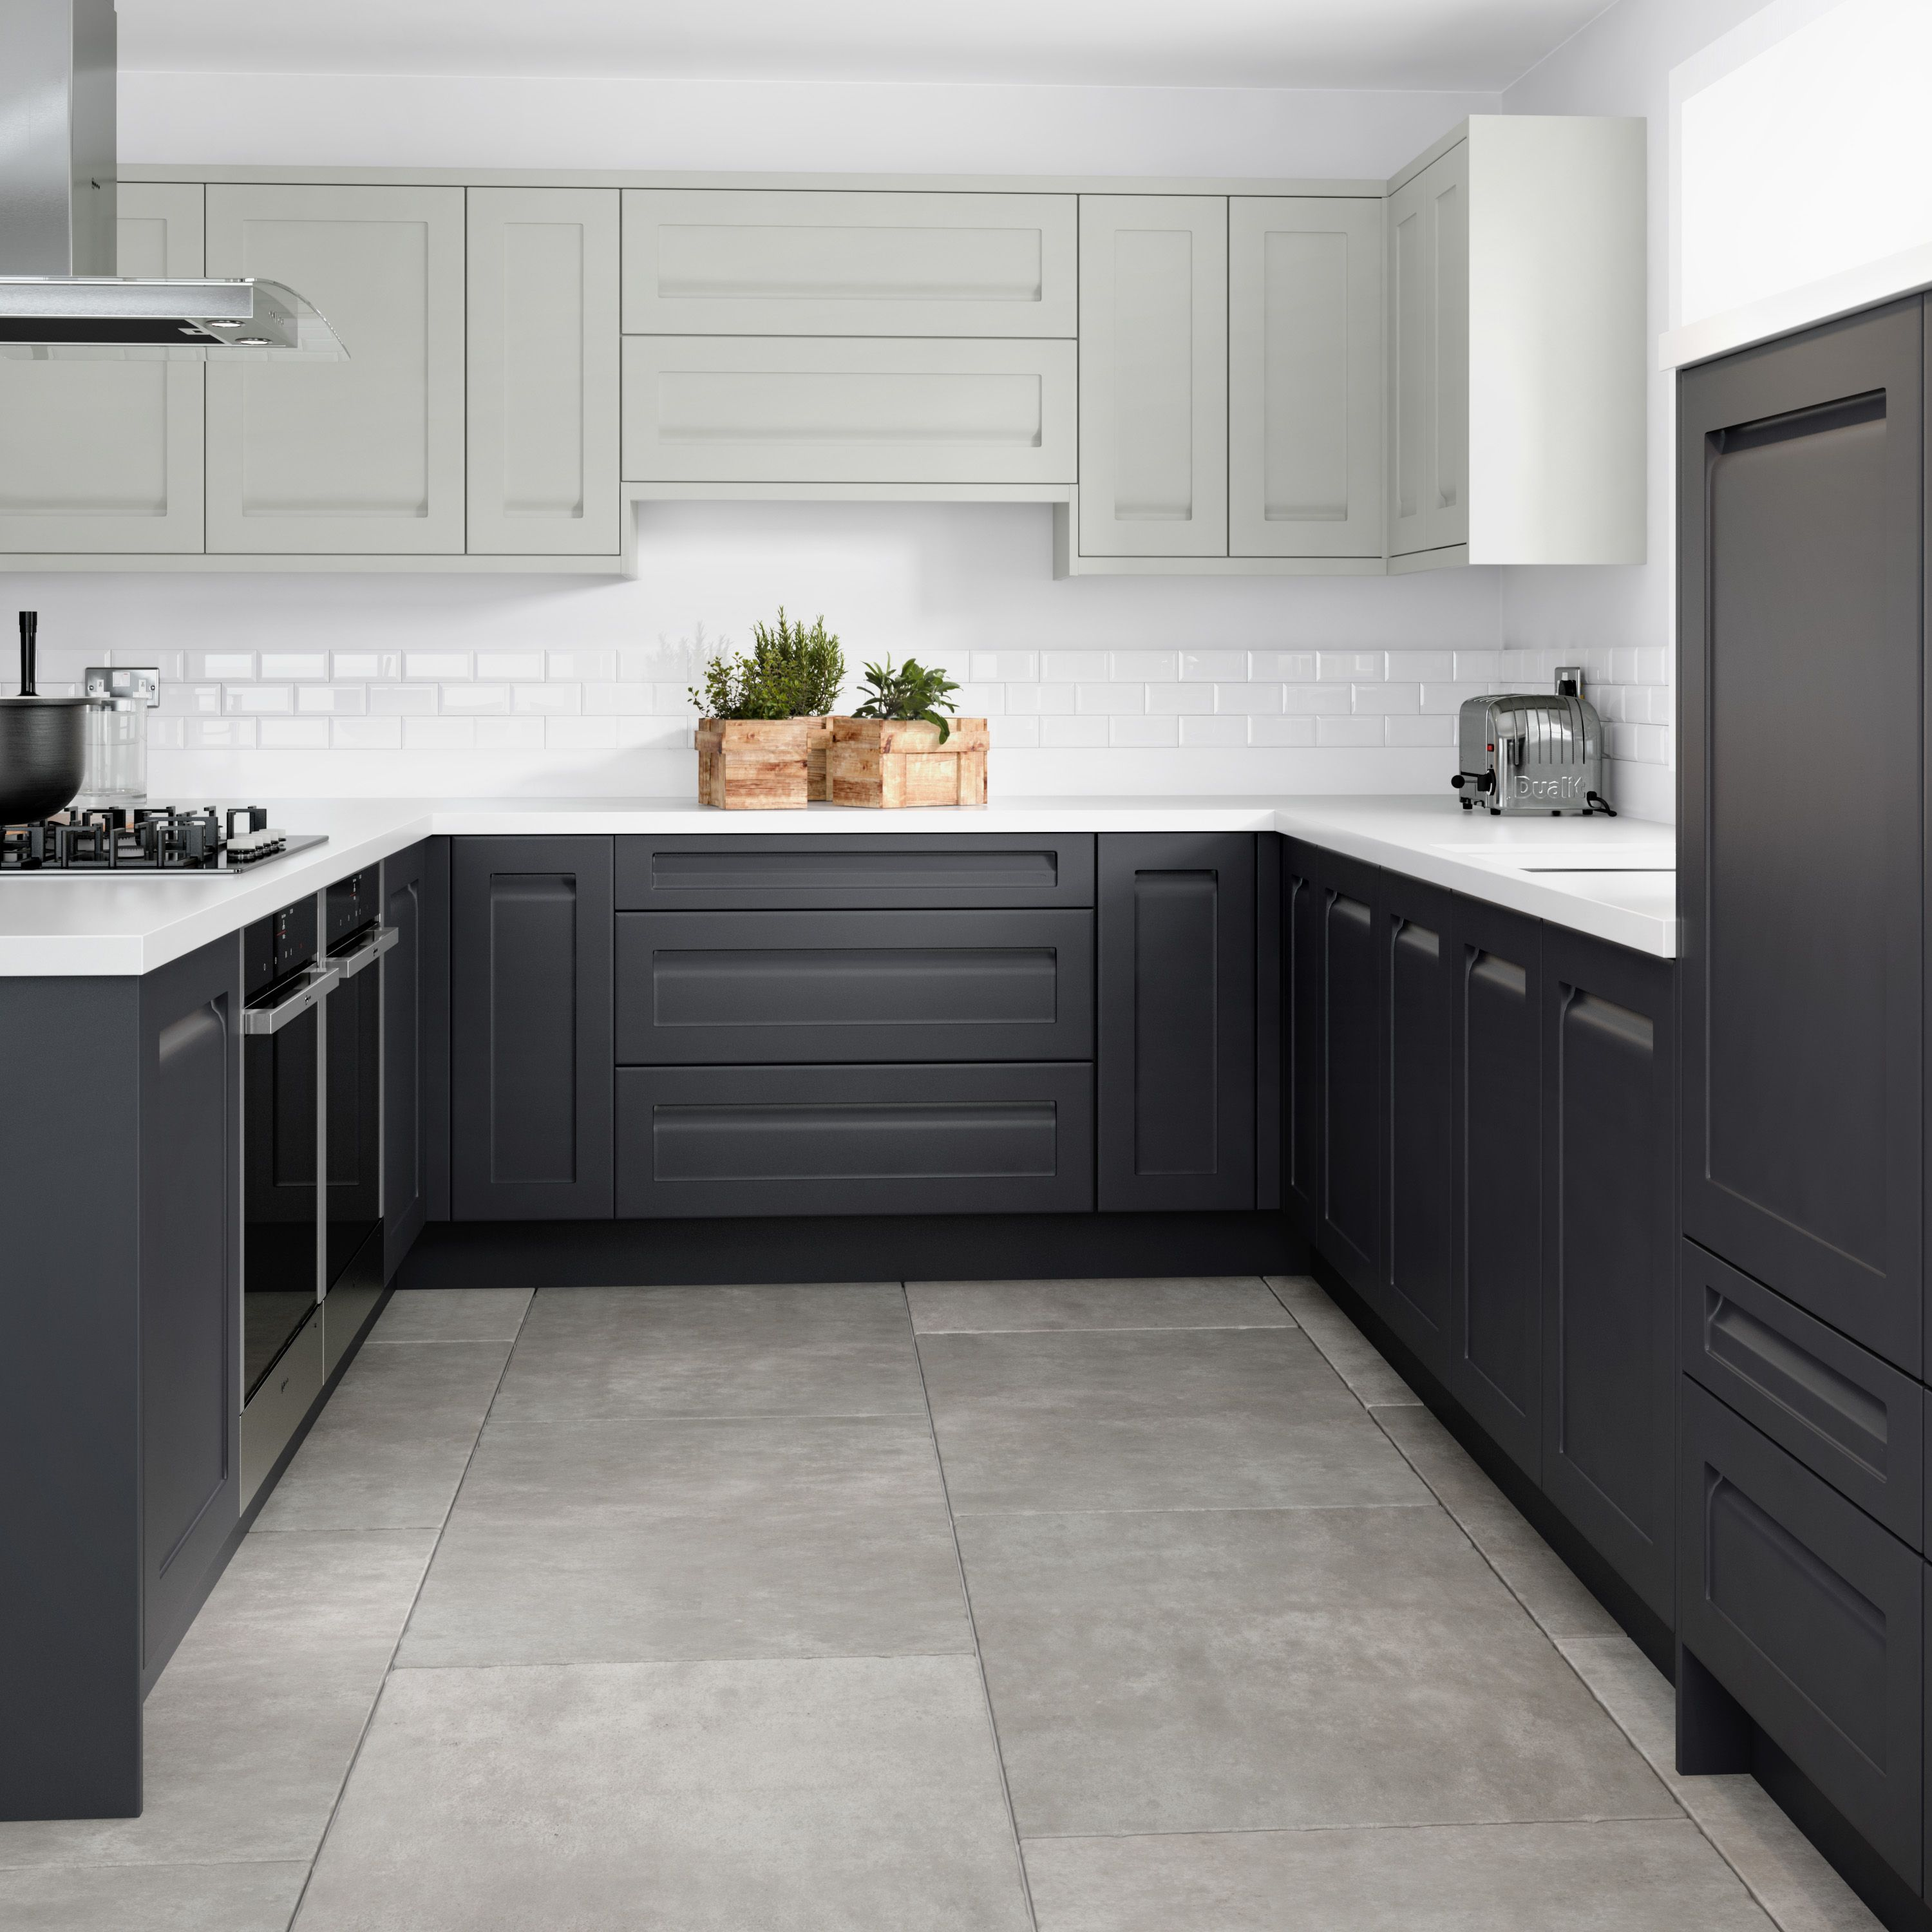 English Rose Anthracite Grey Fitted Kitchen Kitchen Inspiration Design Kitchen Redesign Grey Kitchen Cupboards